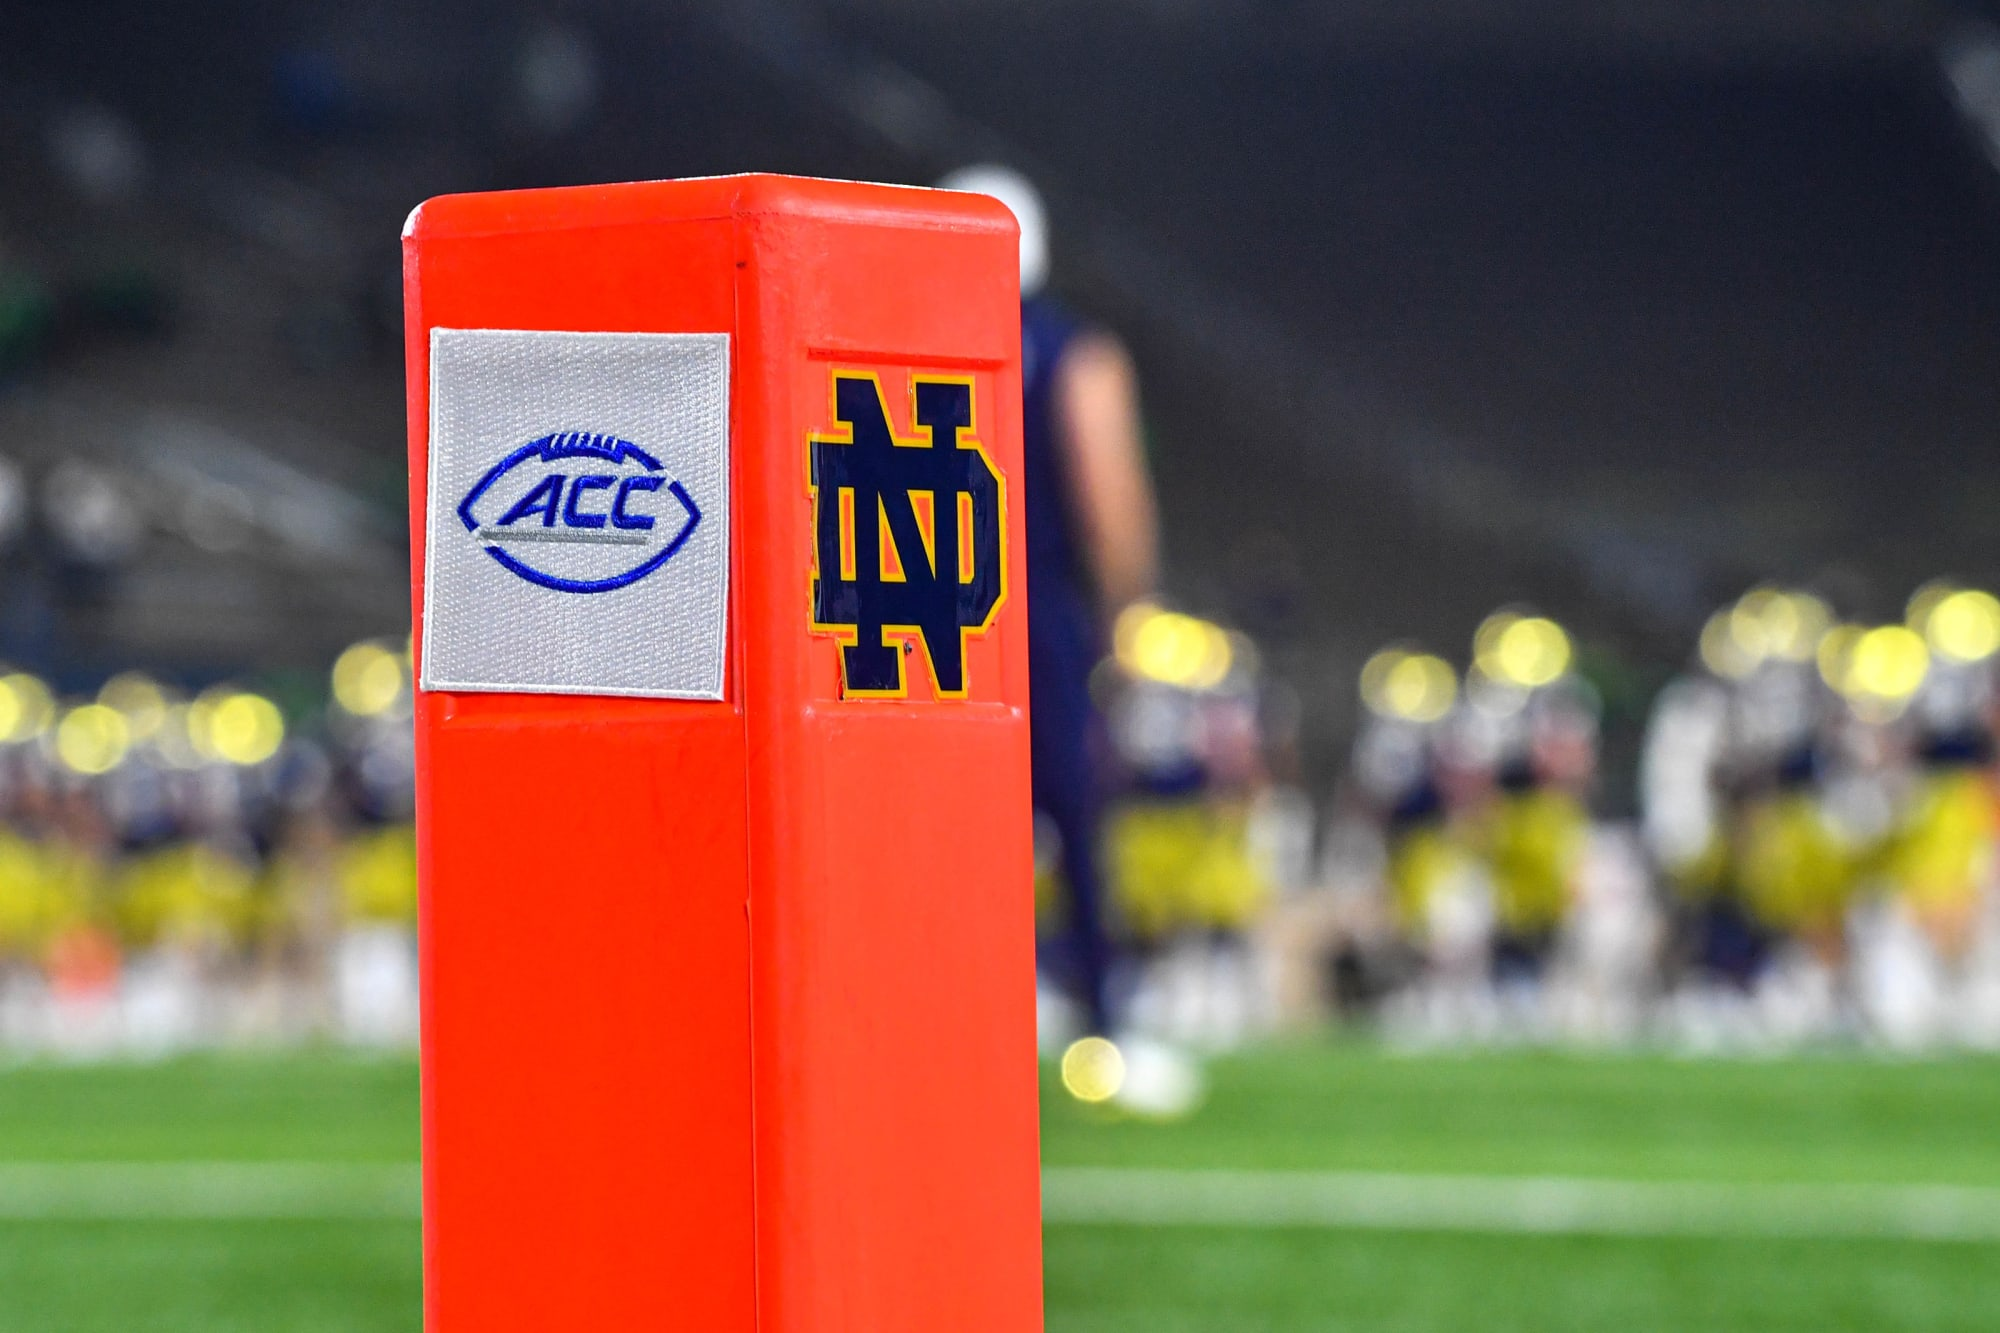 Notre Dame football will stay Independent because of the ACC deal